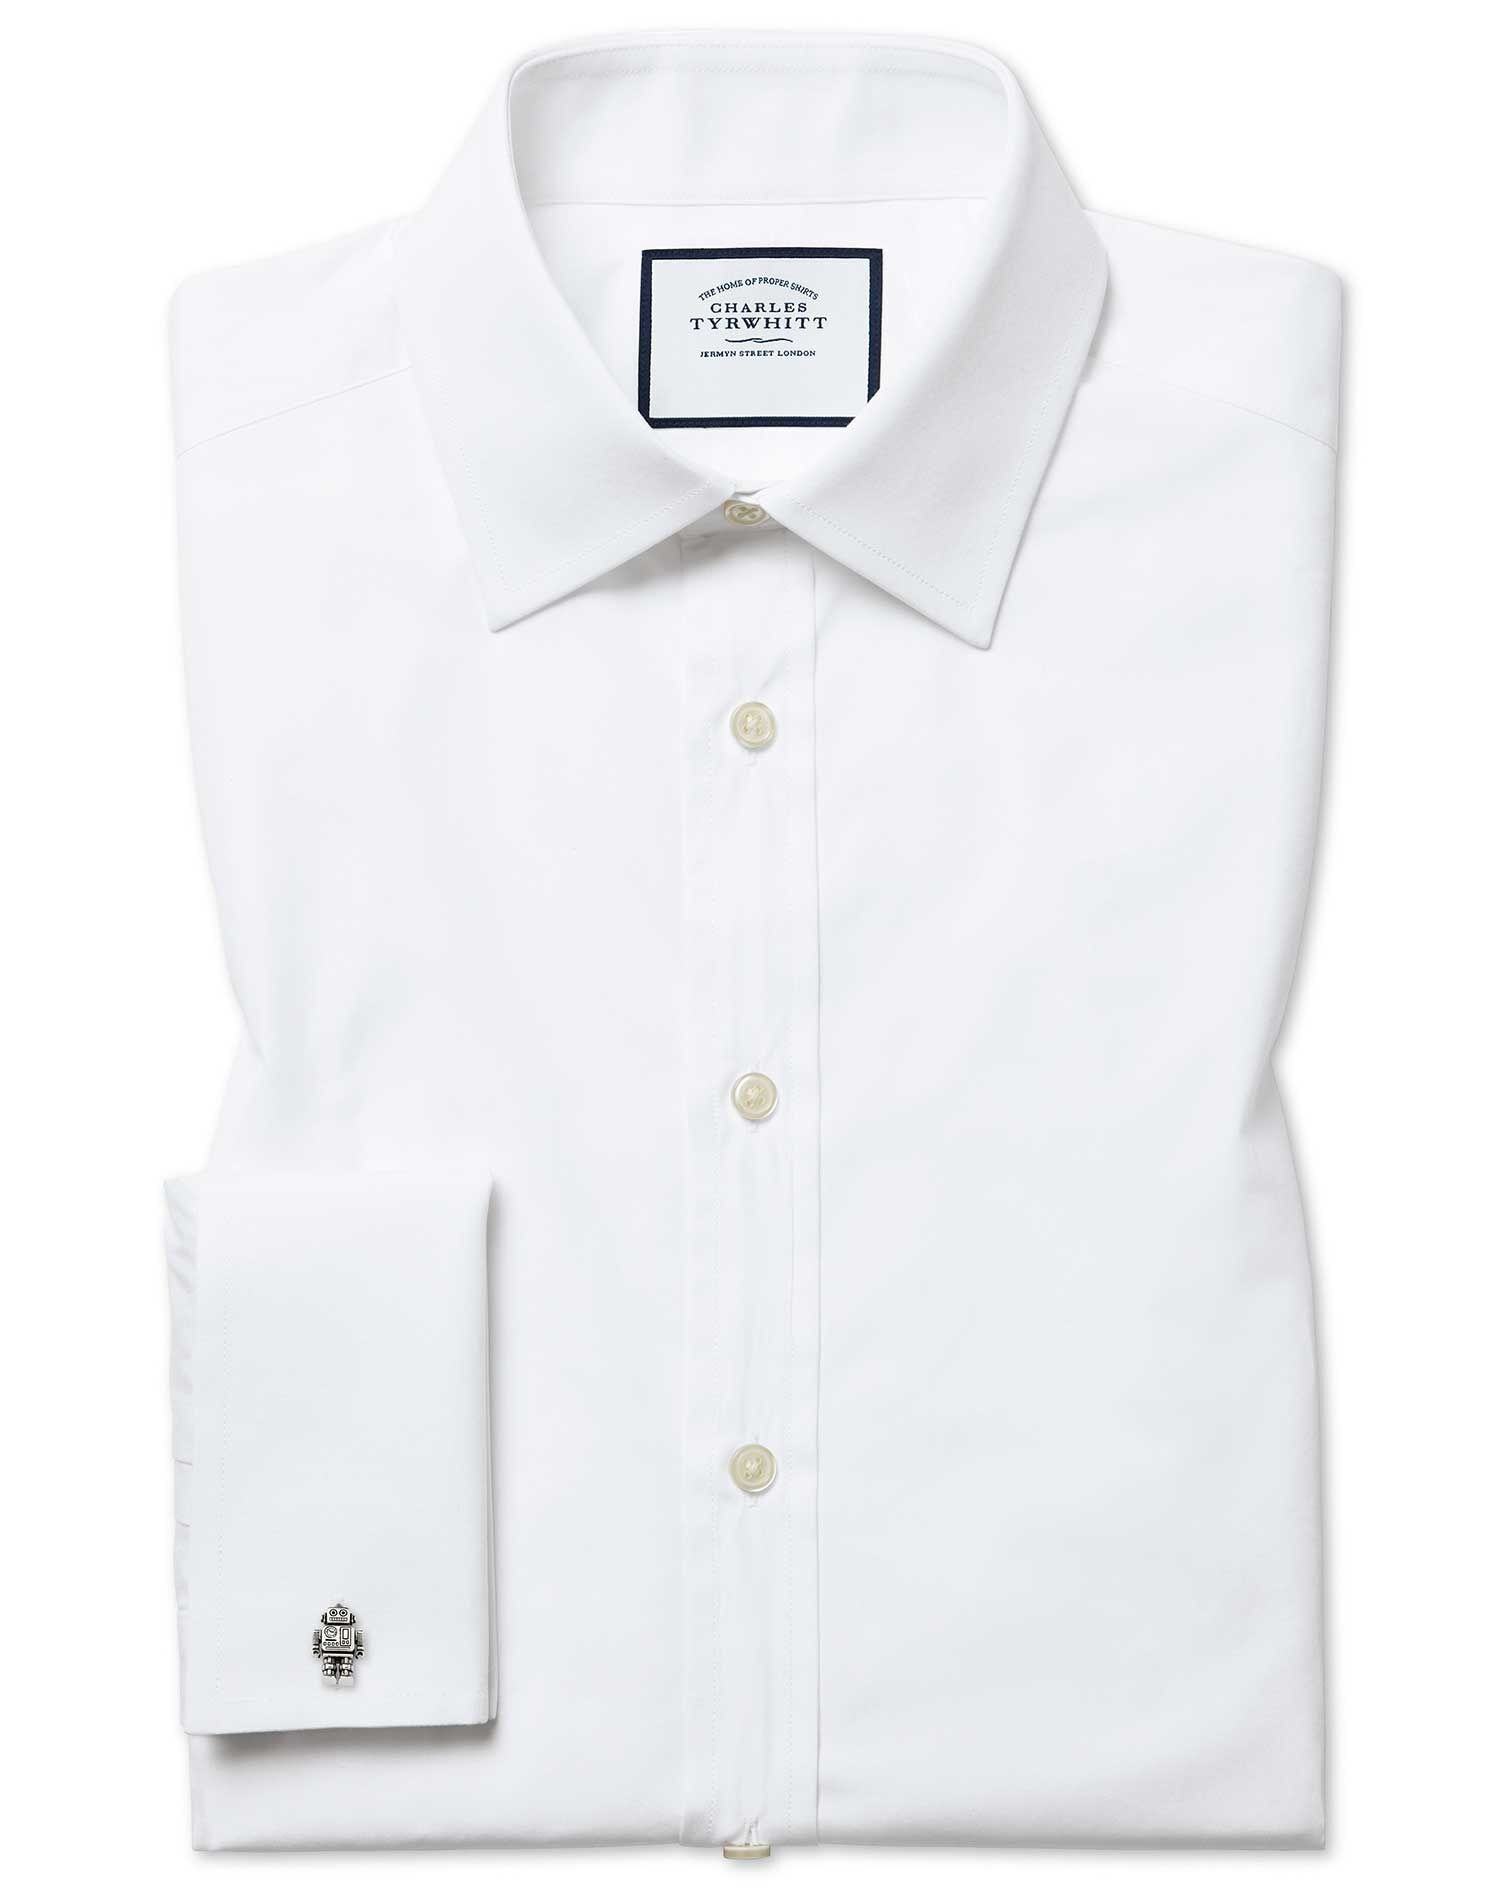 Slim Fit Egyptian Cotton Poplin White Formal Shirt Double Cuff Size 15.5/34 by Charles Tyrwhitt